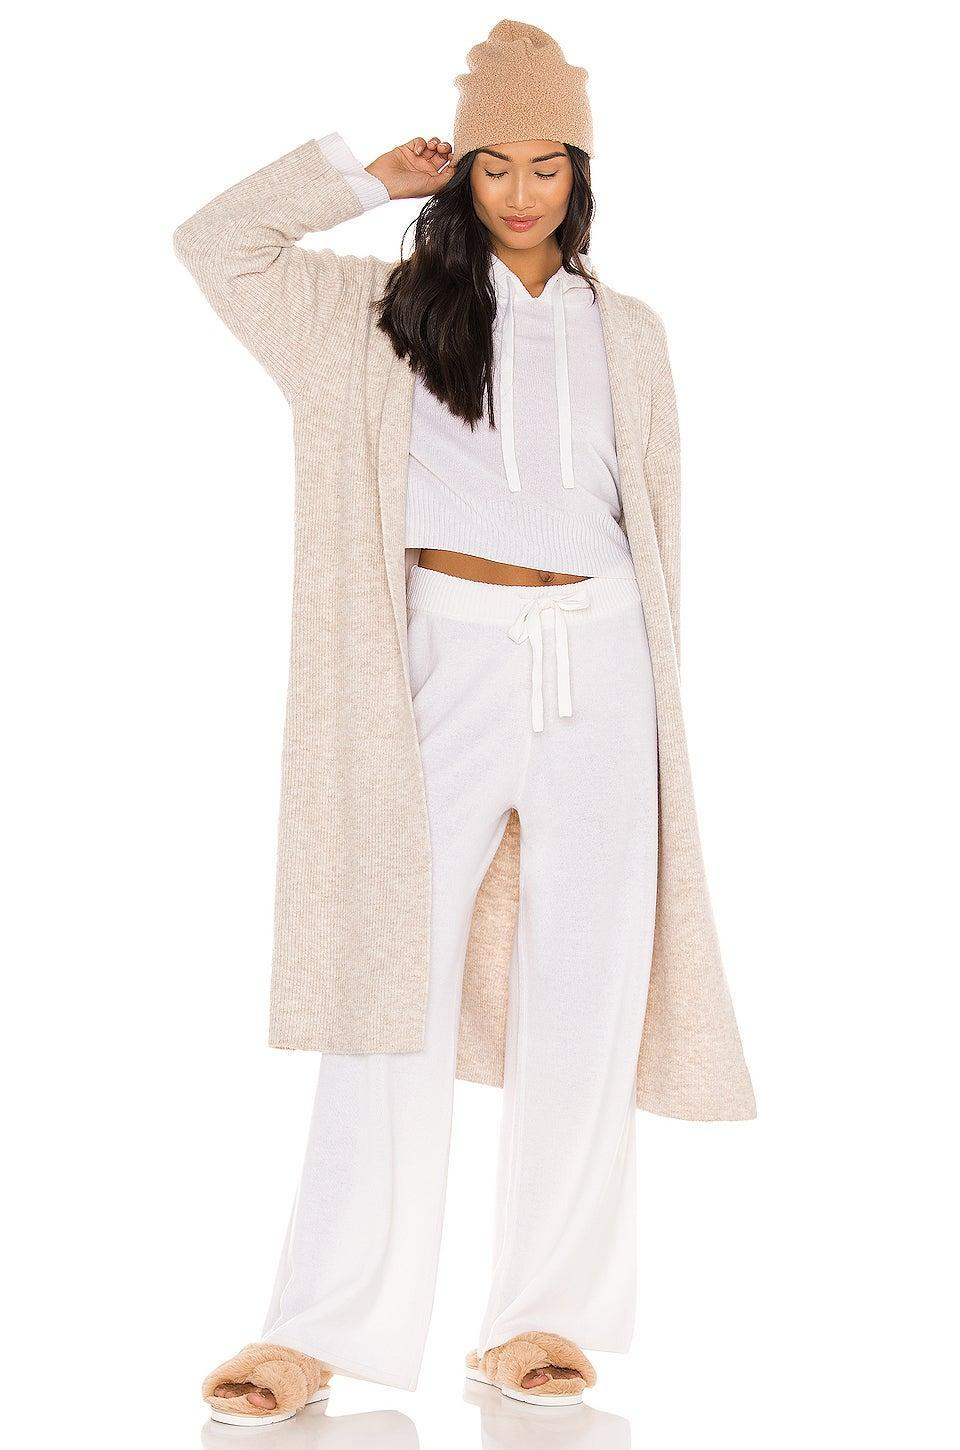 "<h2>Bella Dahl Wide Leg Cashmere Pant</h2><br>If you're looking to swoosh fabulously around your living quarters swaddled in cashmere, this snow-white, ultra-wide-legged pair of sweatpants might be just the ticket.<br><br><strong>Bella Dahl</strong> Easy Wide Leg Pant, $, available at <a href=""https://go.skimresources.com/?id=30283X879131&url=https%3A%2F%2Fwww.revolve.com%2Fbella-dahl-easy-wide-leg-pant-in-pearl-white%2Fdp%2FBLD-WP90%2F%3Fd%3DWomens%26page%3D1%26product%3DBLD-WP90%26bneEl%3Dfalse%26"" rel=""nofollow noopener"" target=""_blank"" data-ylk=""slk:Revolve"" class=""link rapid-noclick-resp"">Revolve</a>"